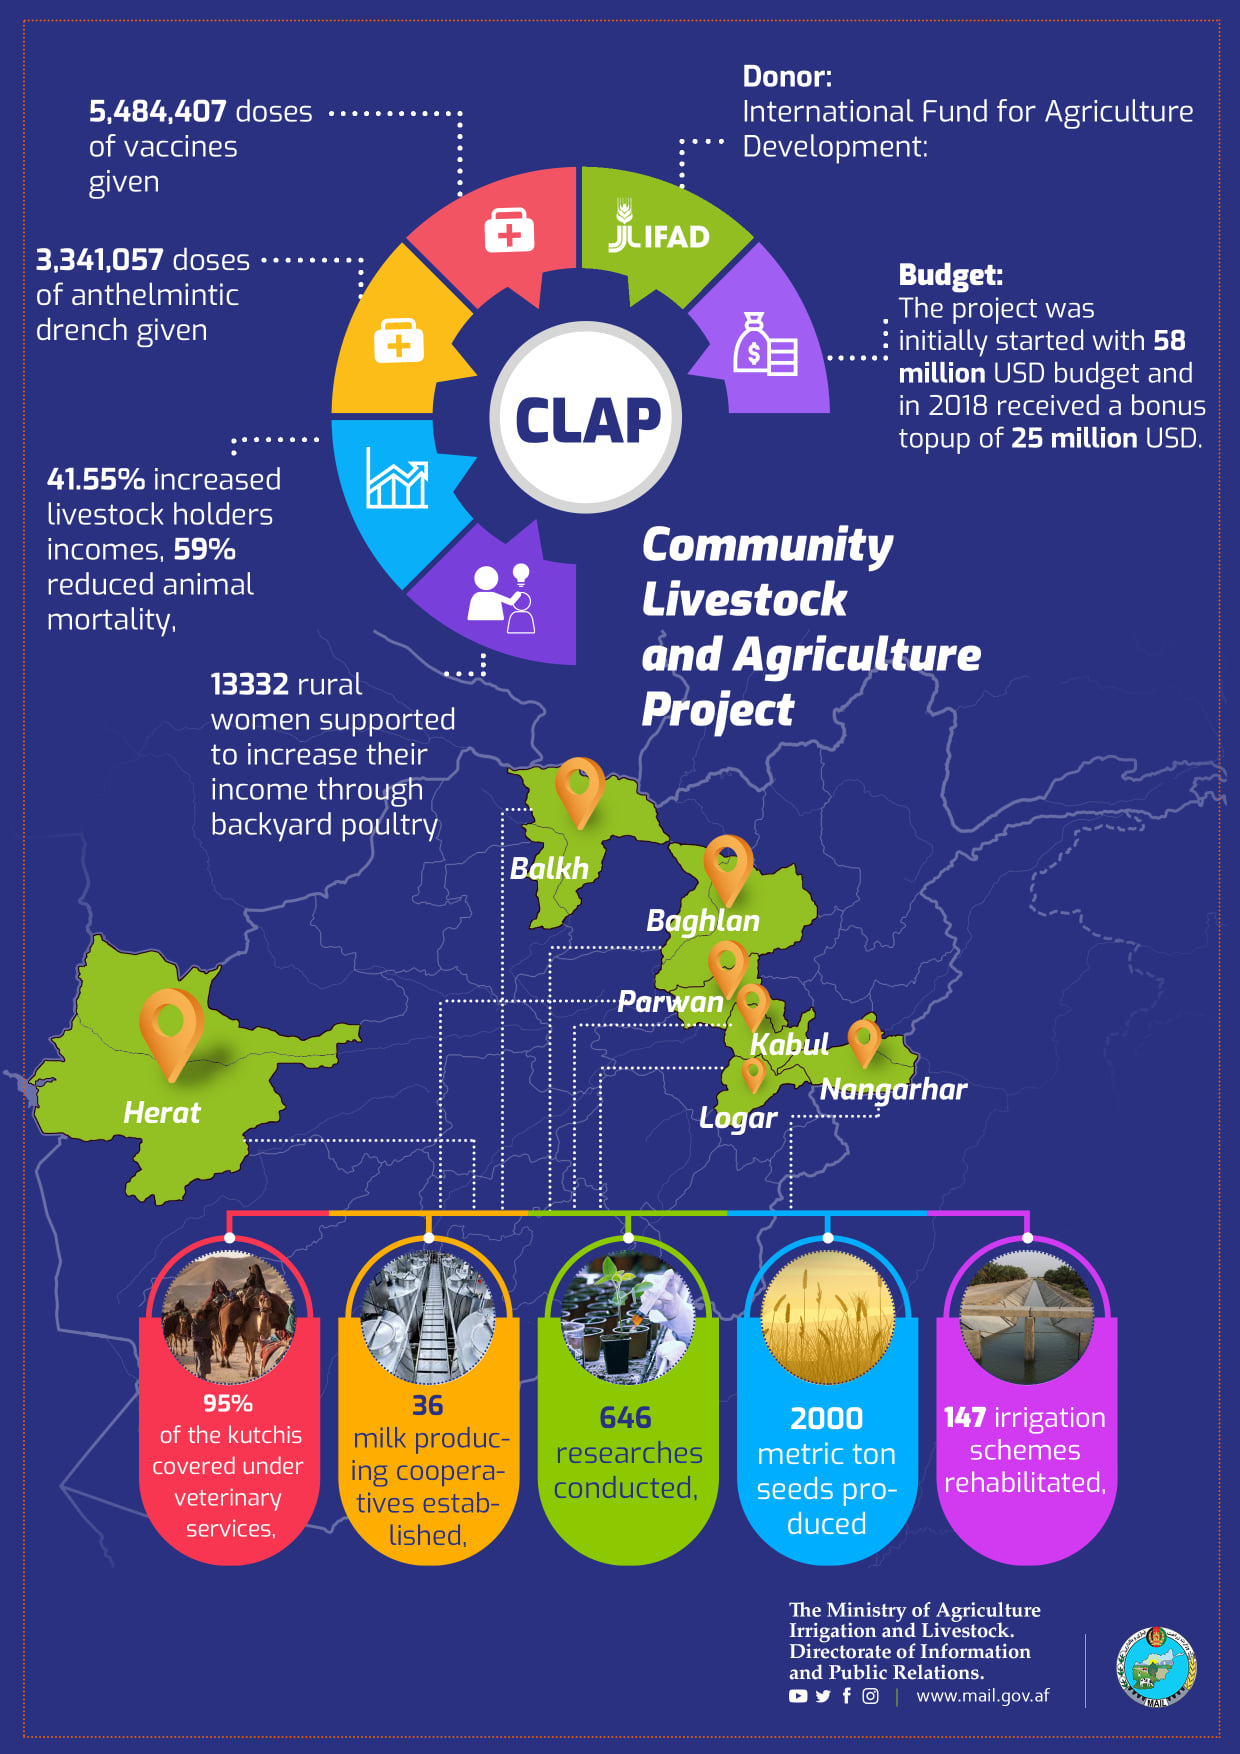 The main activities and achievements of Community Livestock and Agriculture Project (CLAP) of the Ministry of Agriculture, Irrigation and Livestock.‎